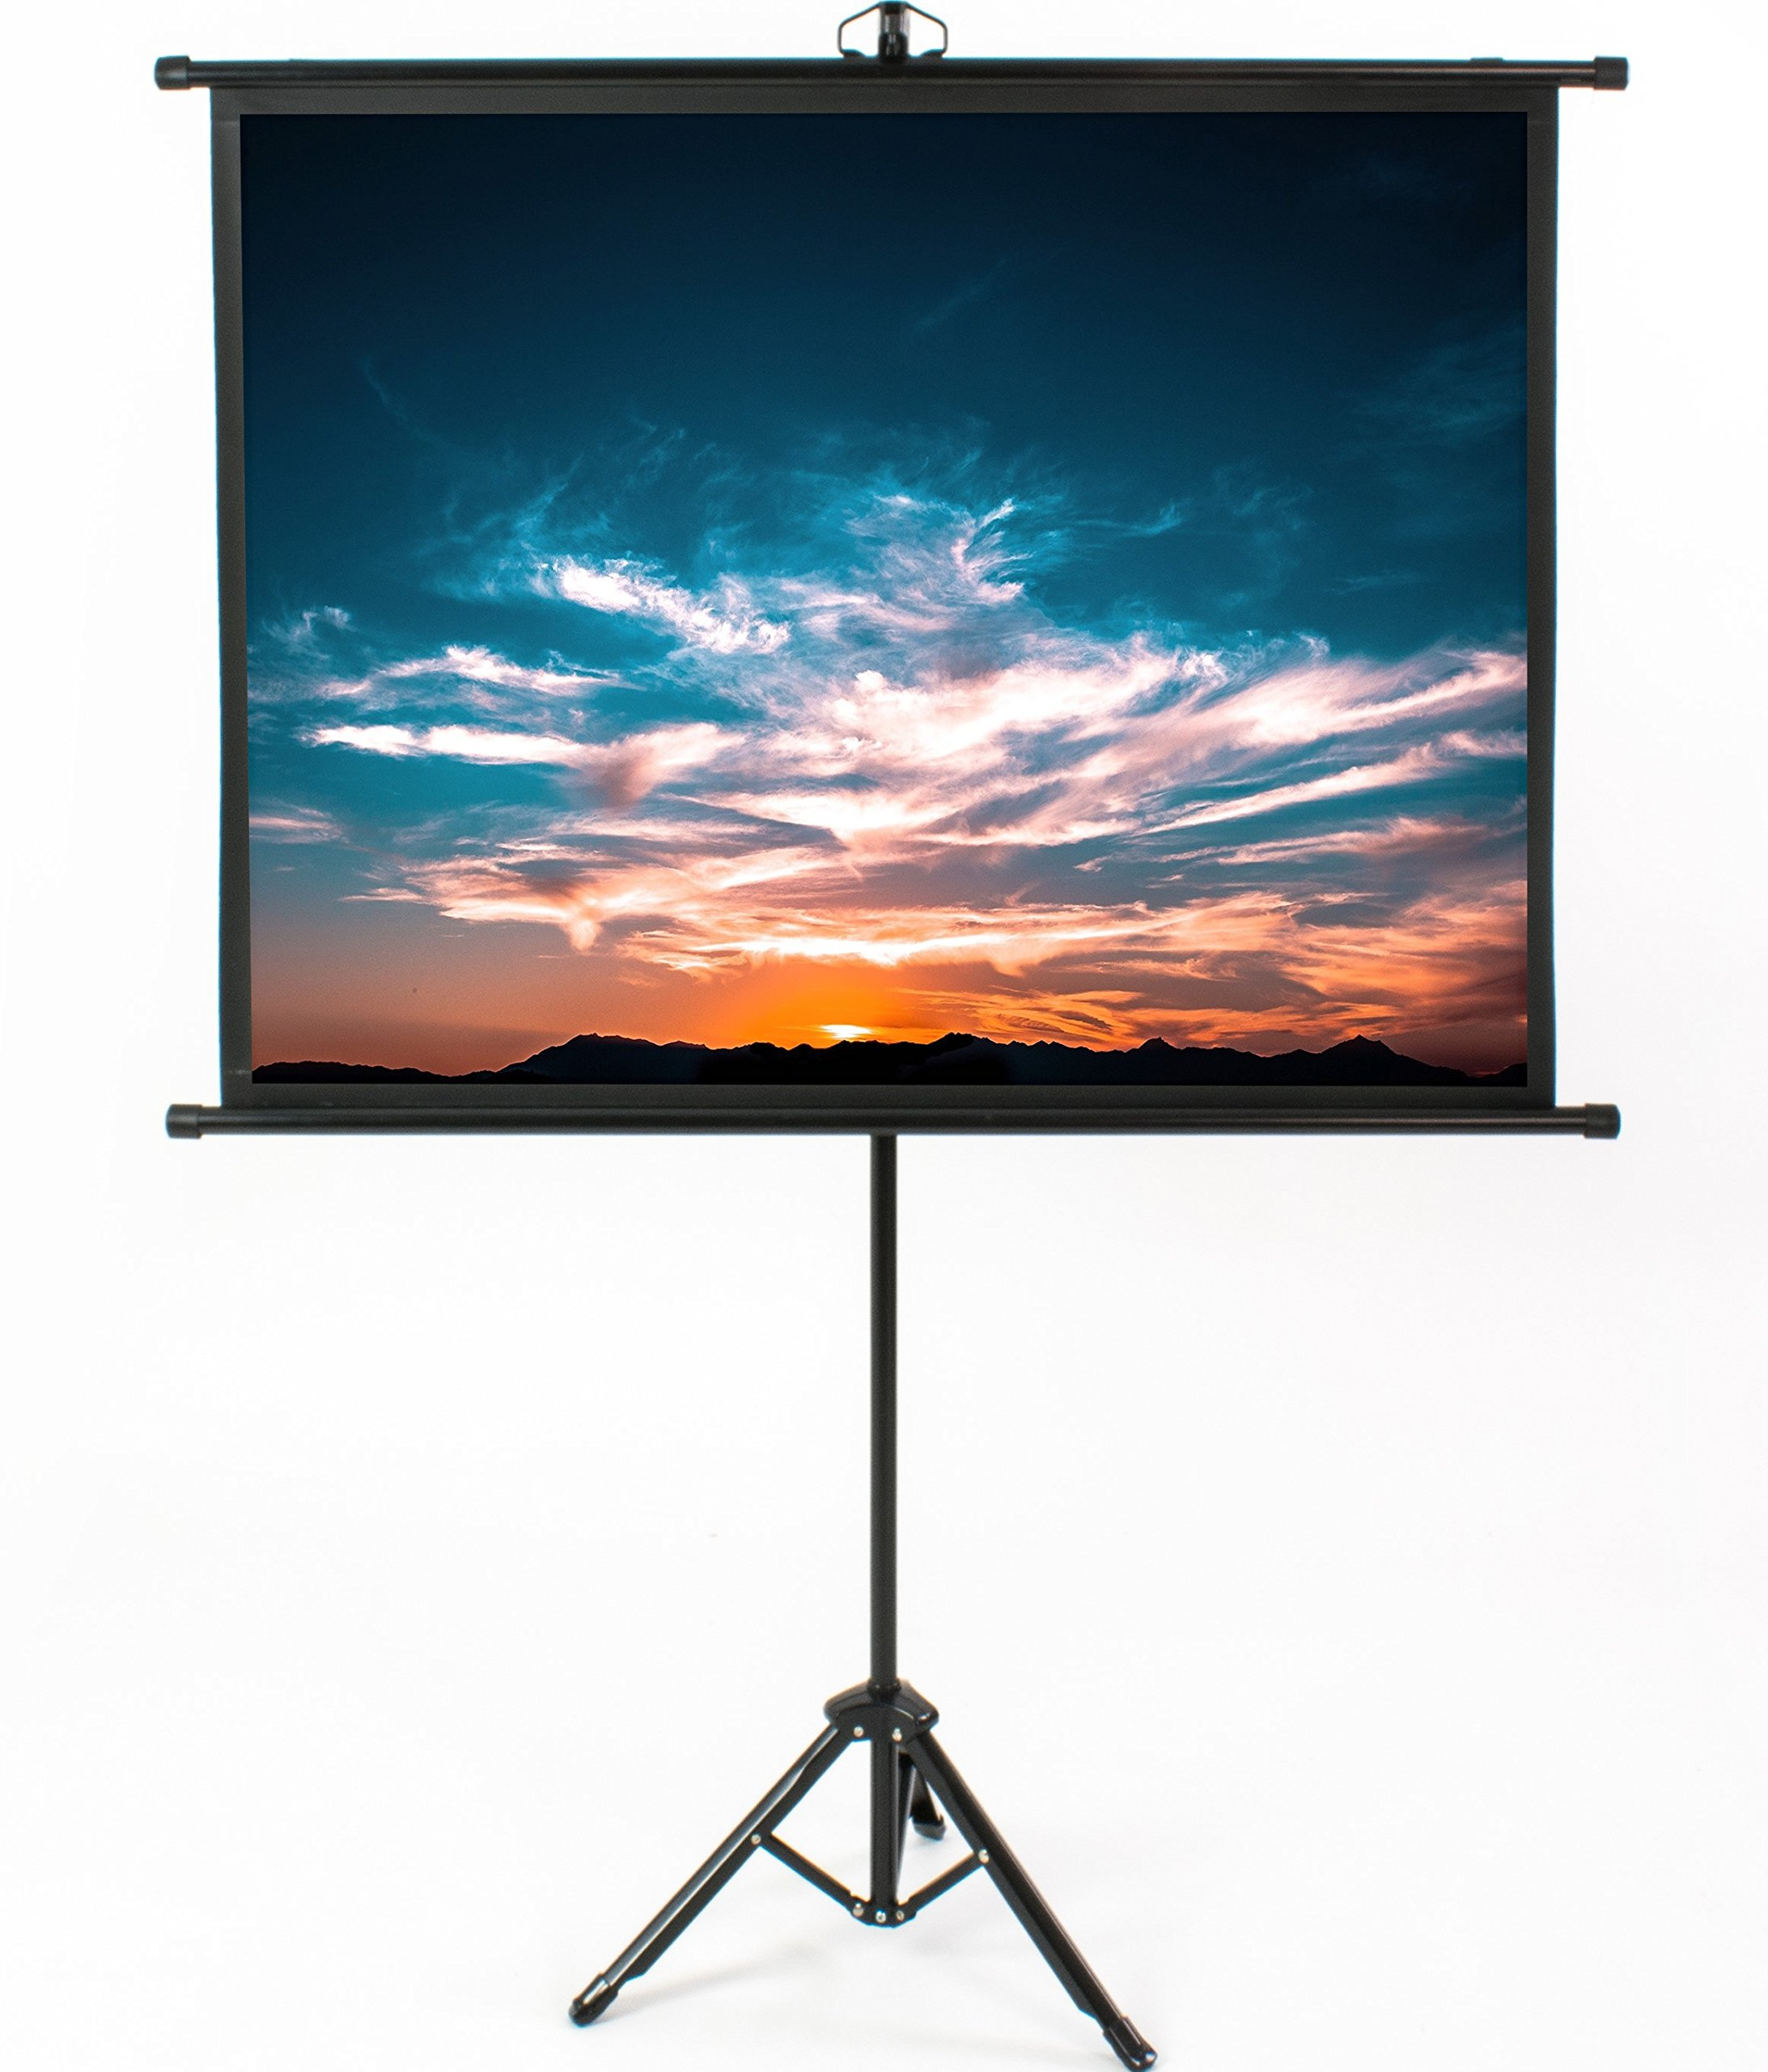 VIVO 50'' Portable Indoor Outdoor Projector Screen, 50 inch Diagonal Projection HD 4:3 Projection Pull up Foldable Stand Tripod (PS-T-050B)